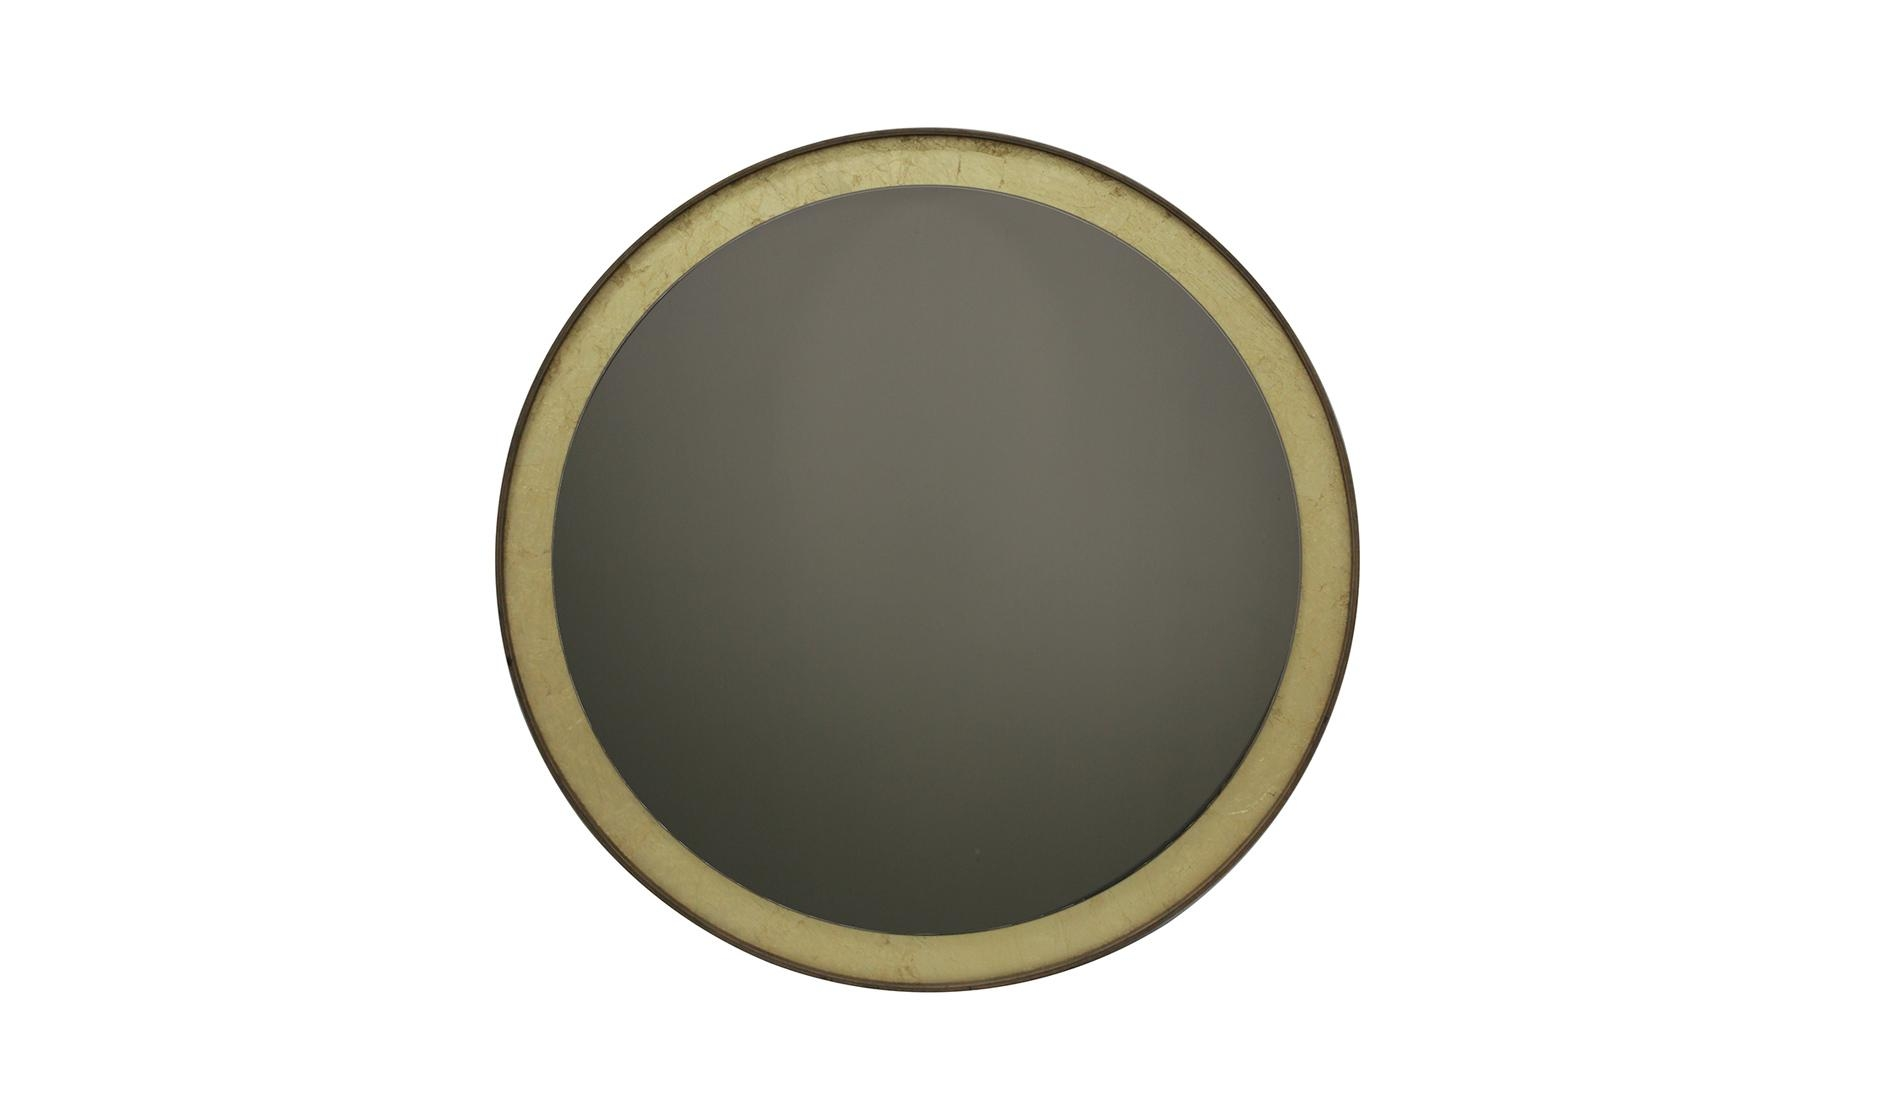 Notre Monde Gold Leaf Bronze Wall Mirror | Dopo Domani In Bronze Wall Mirror (Image 9 of 20)